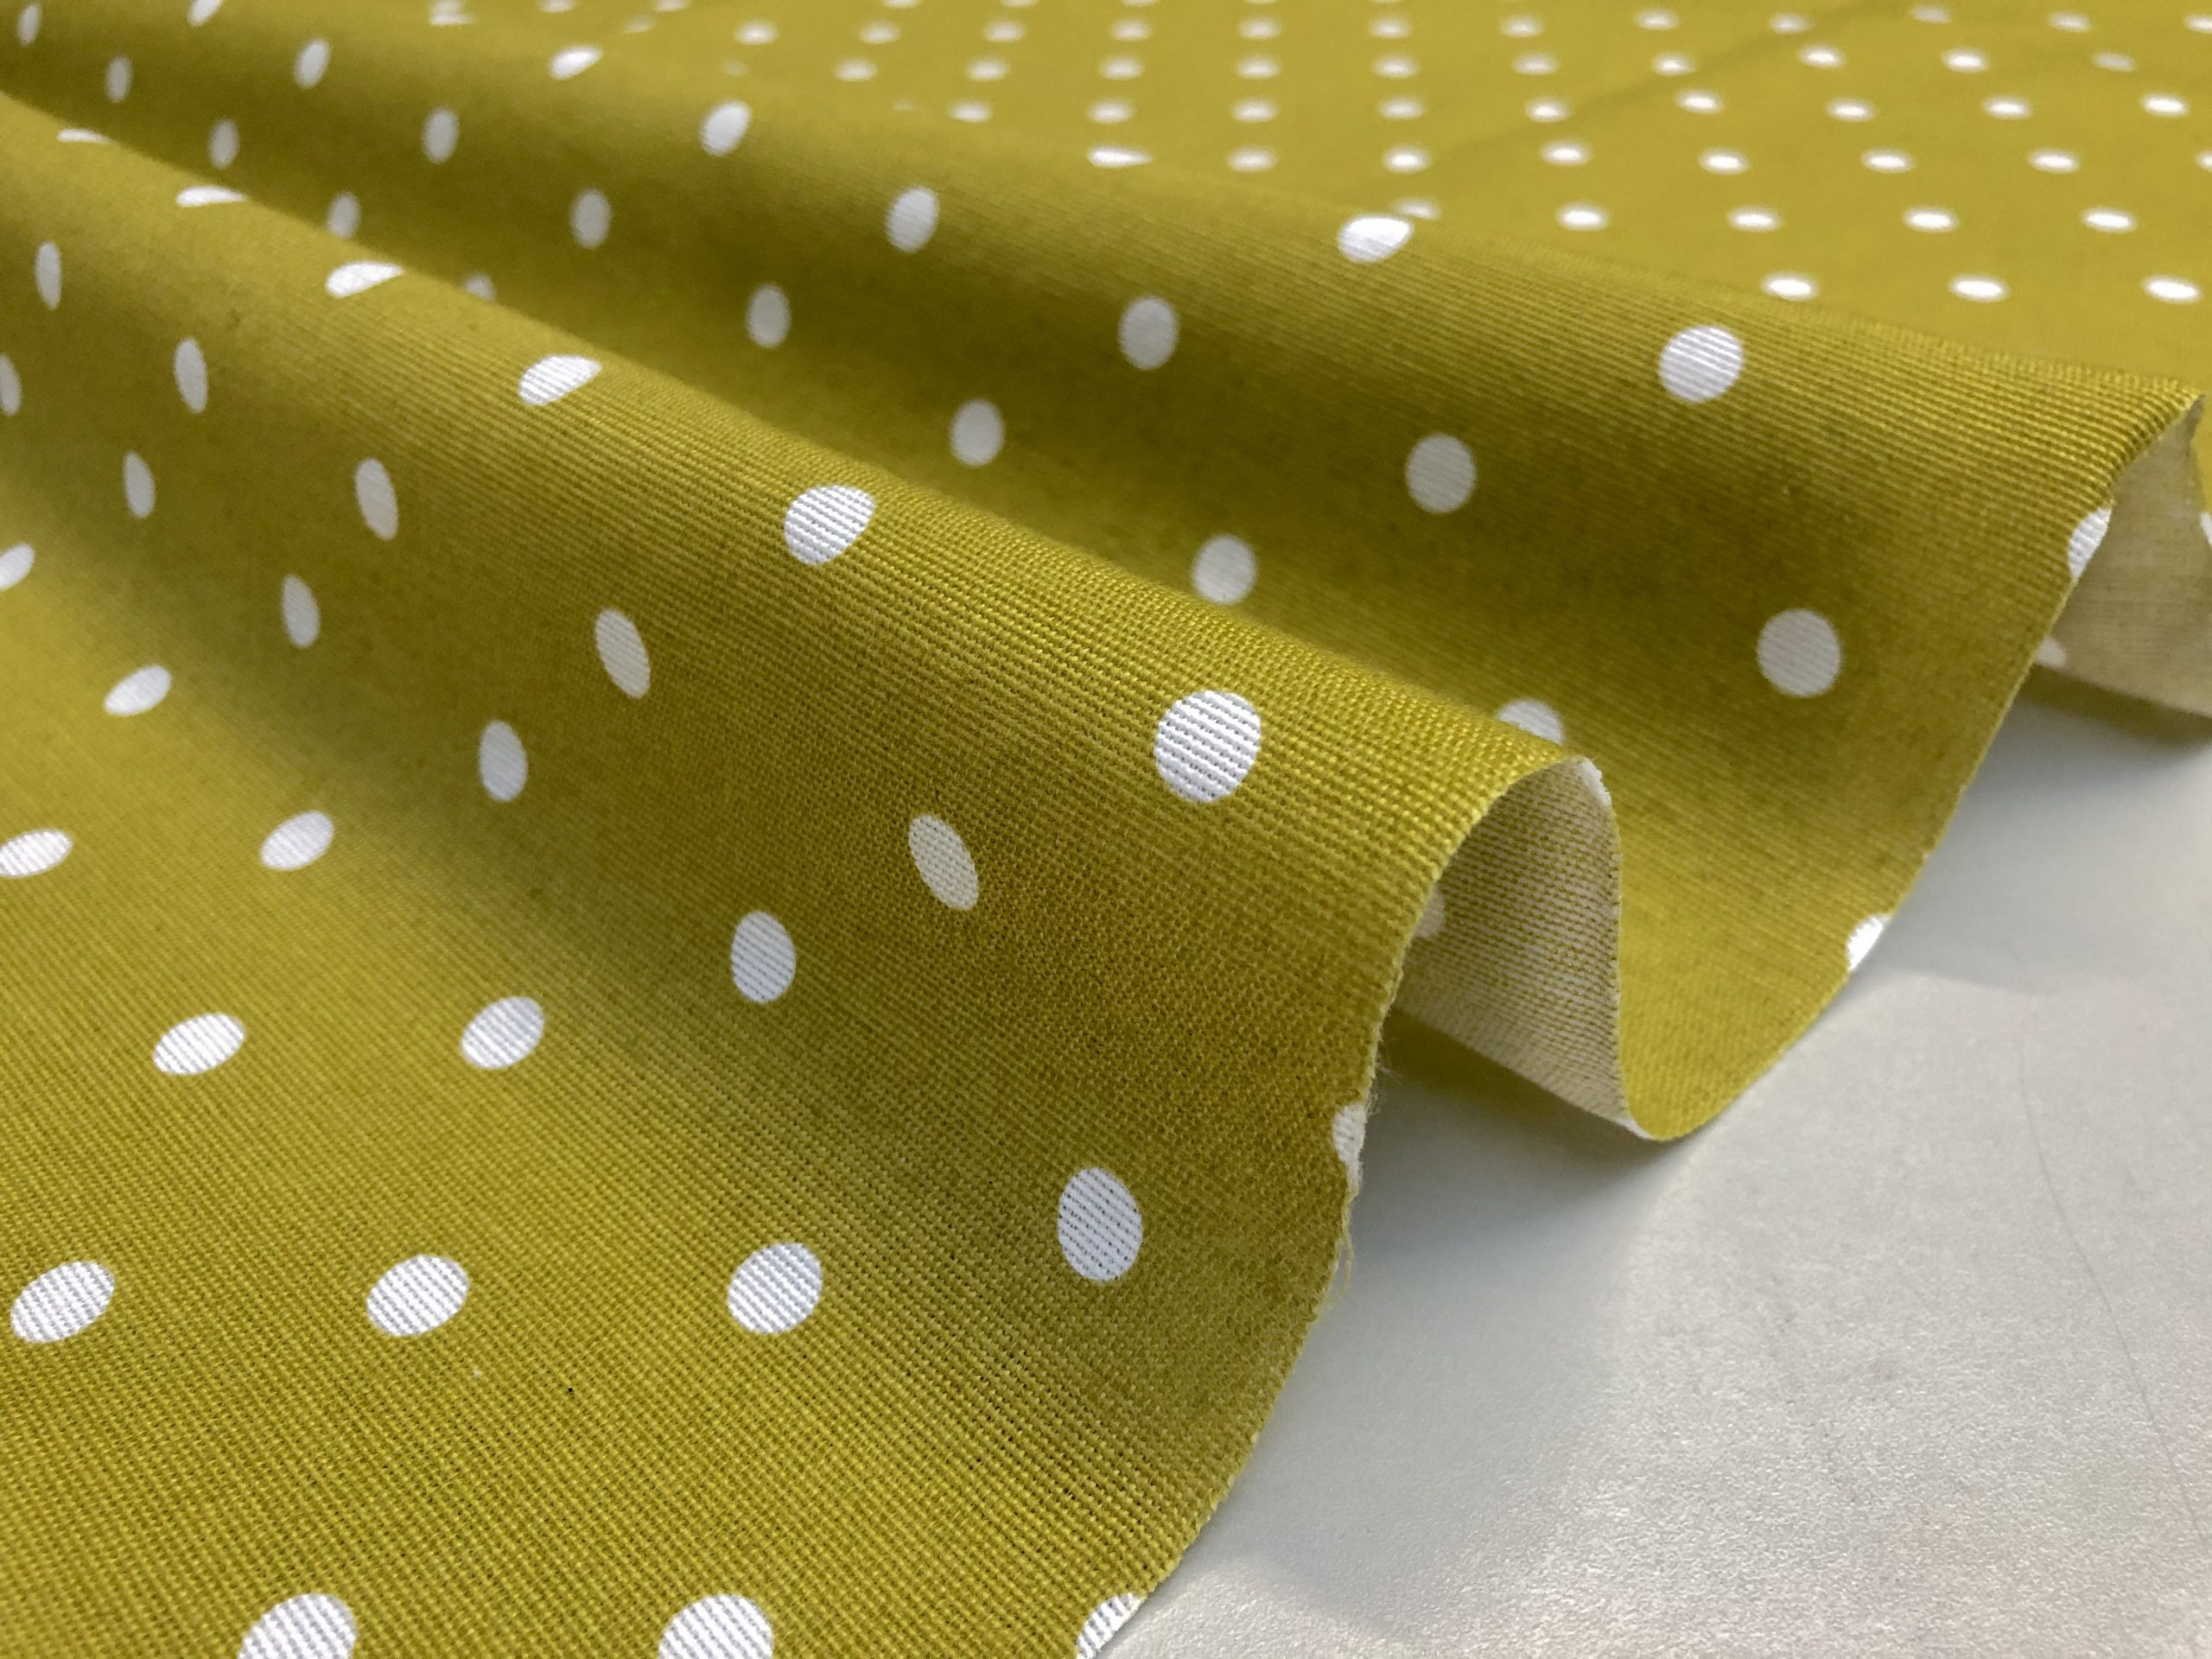 MUSTARD Polka Dot Fabric White Spots Dots PolyCotton Material Shabby Classic Chic Textile Home Decor Dress Curtains – 55''/140cm Wide Canvas